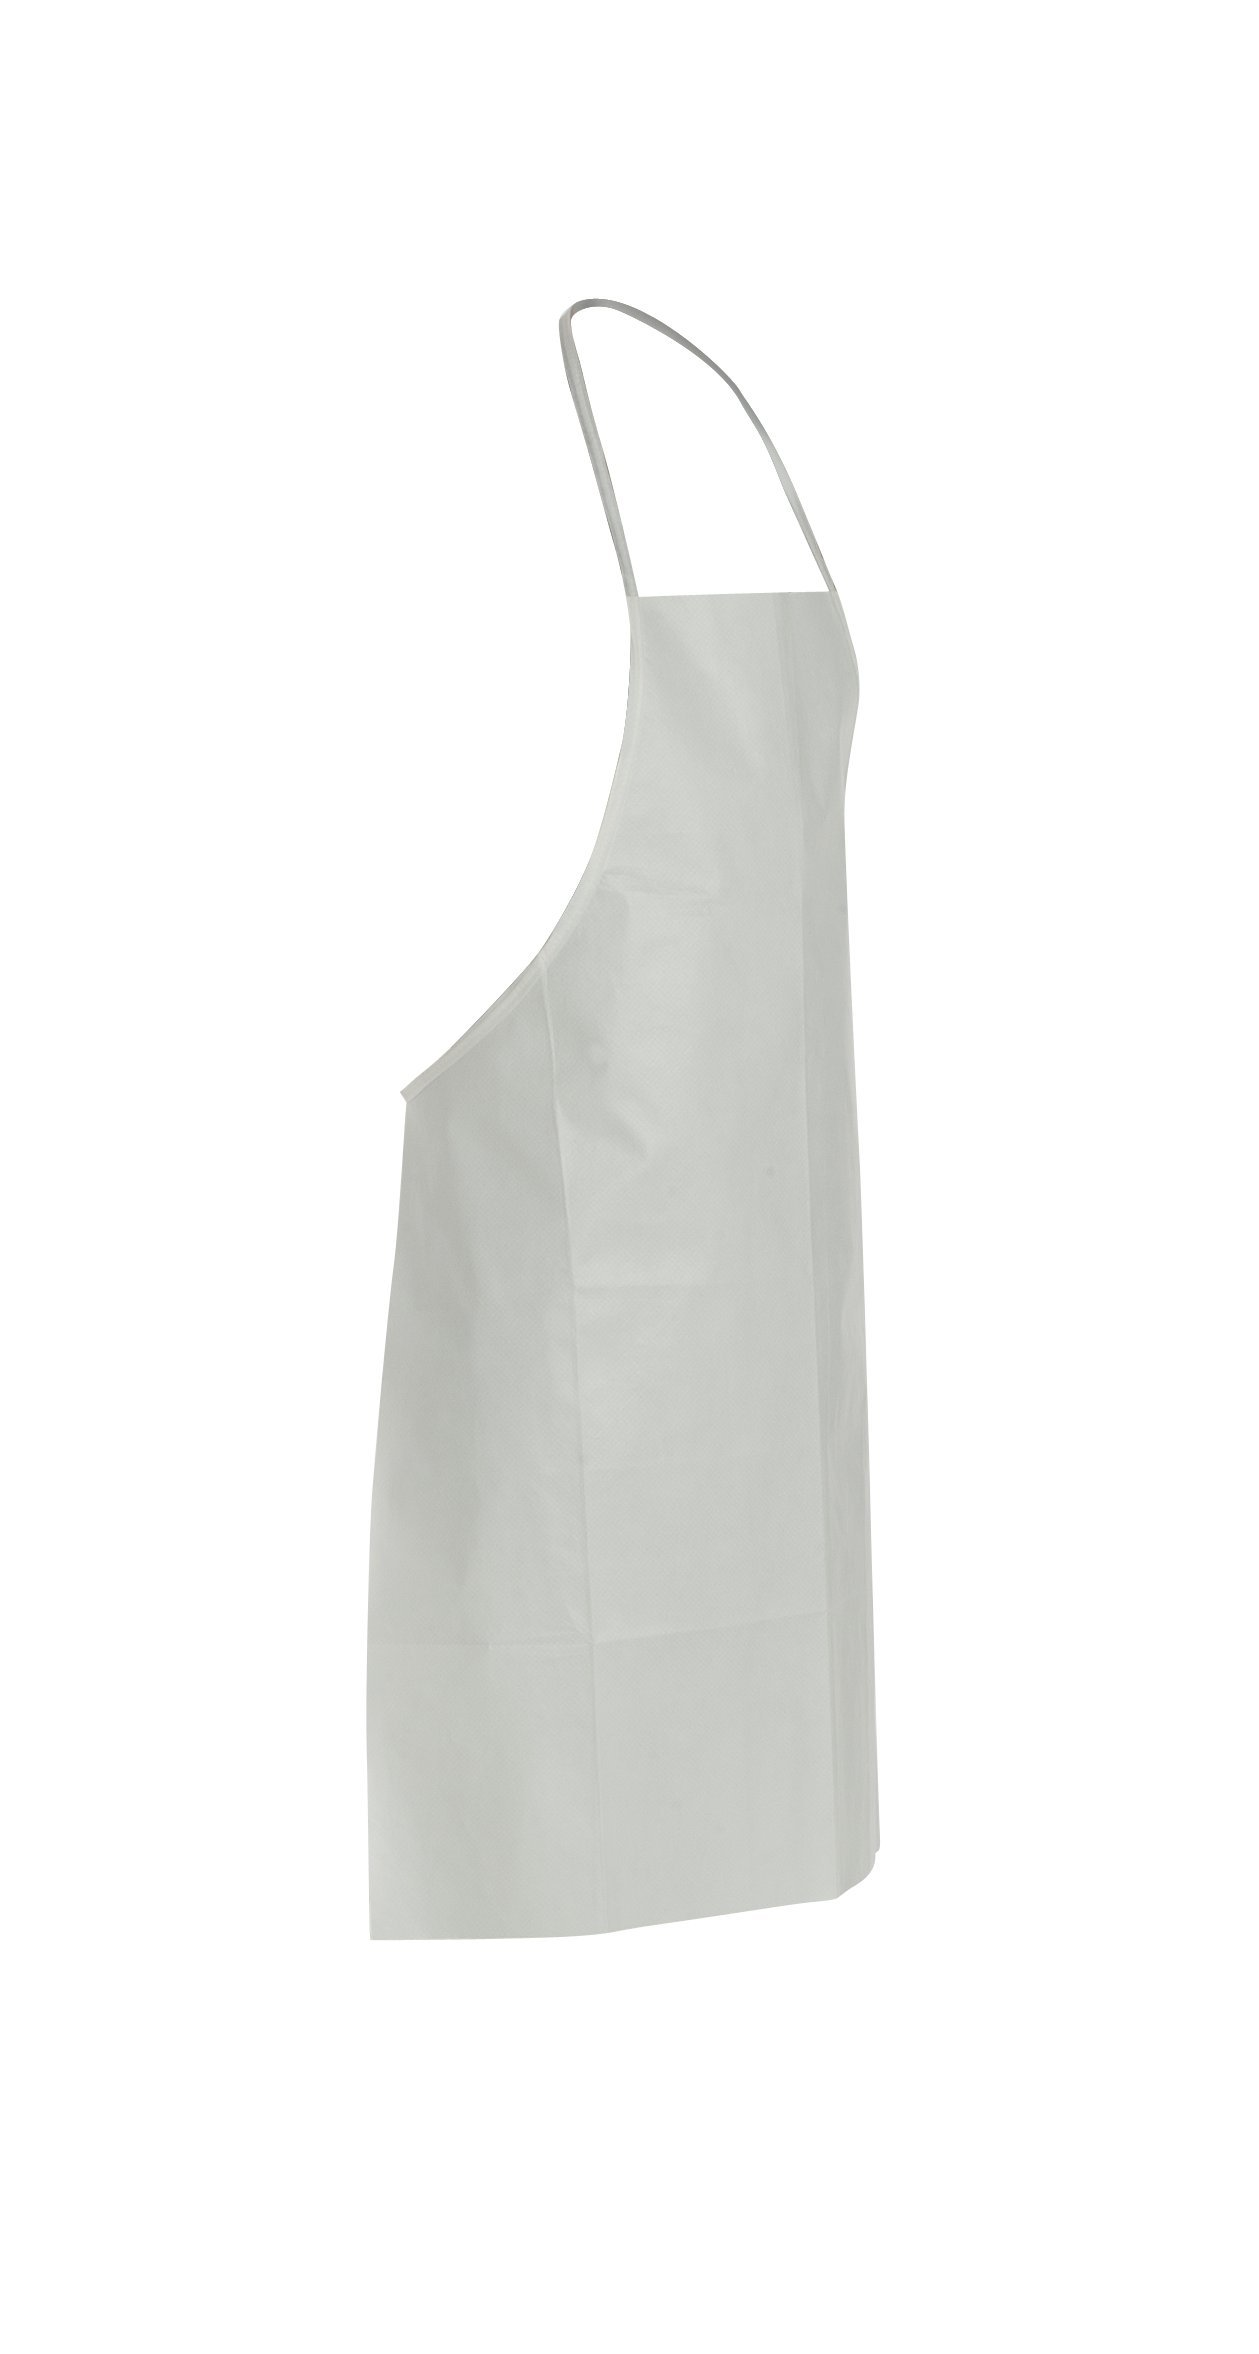 DuPont Tyvek 400 TY273B Protective Bib Apron, Disposable, White, Universal Size (Pack of 100) by DuPont